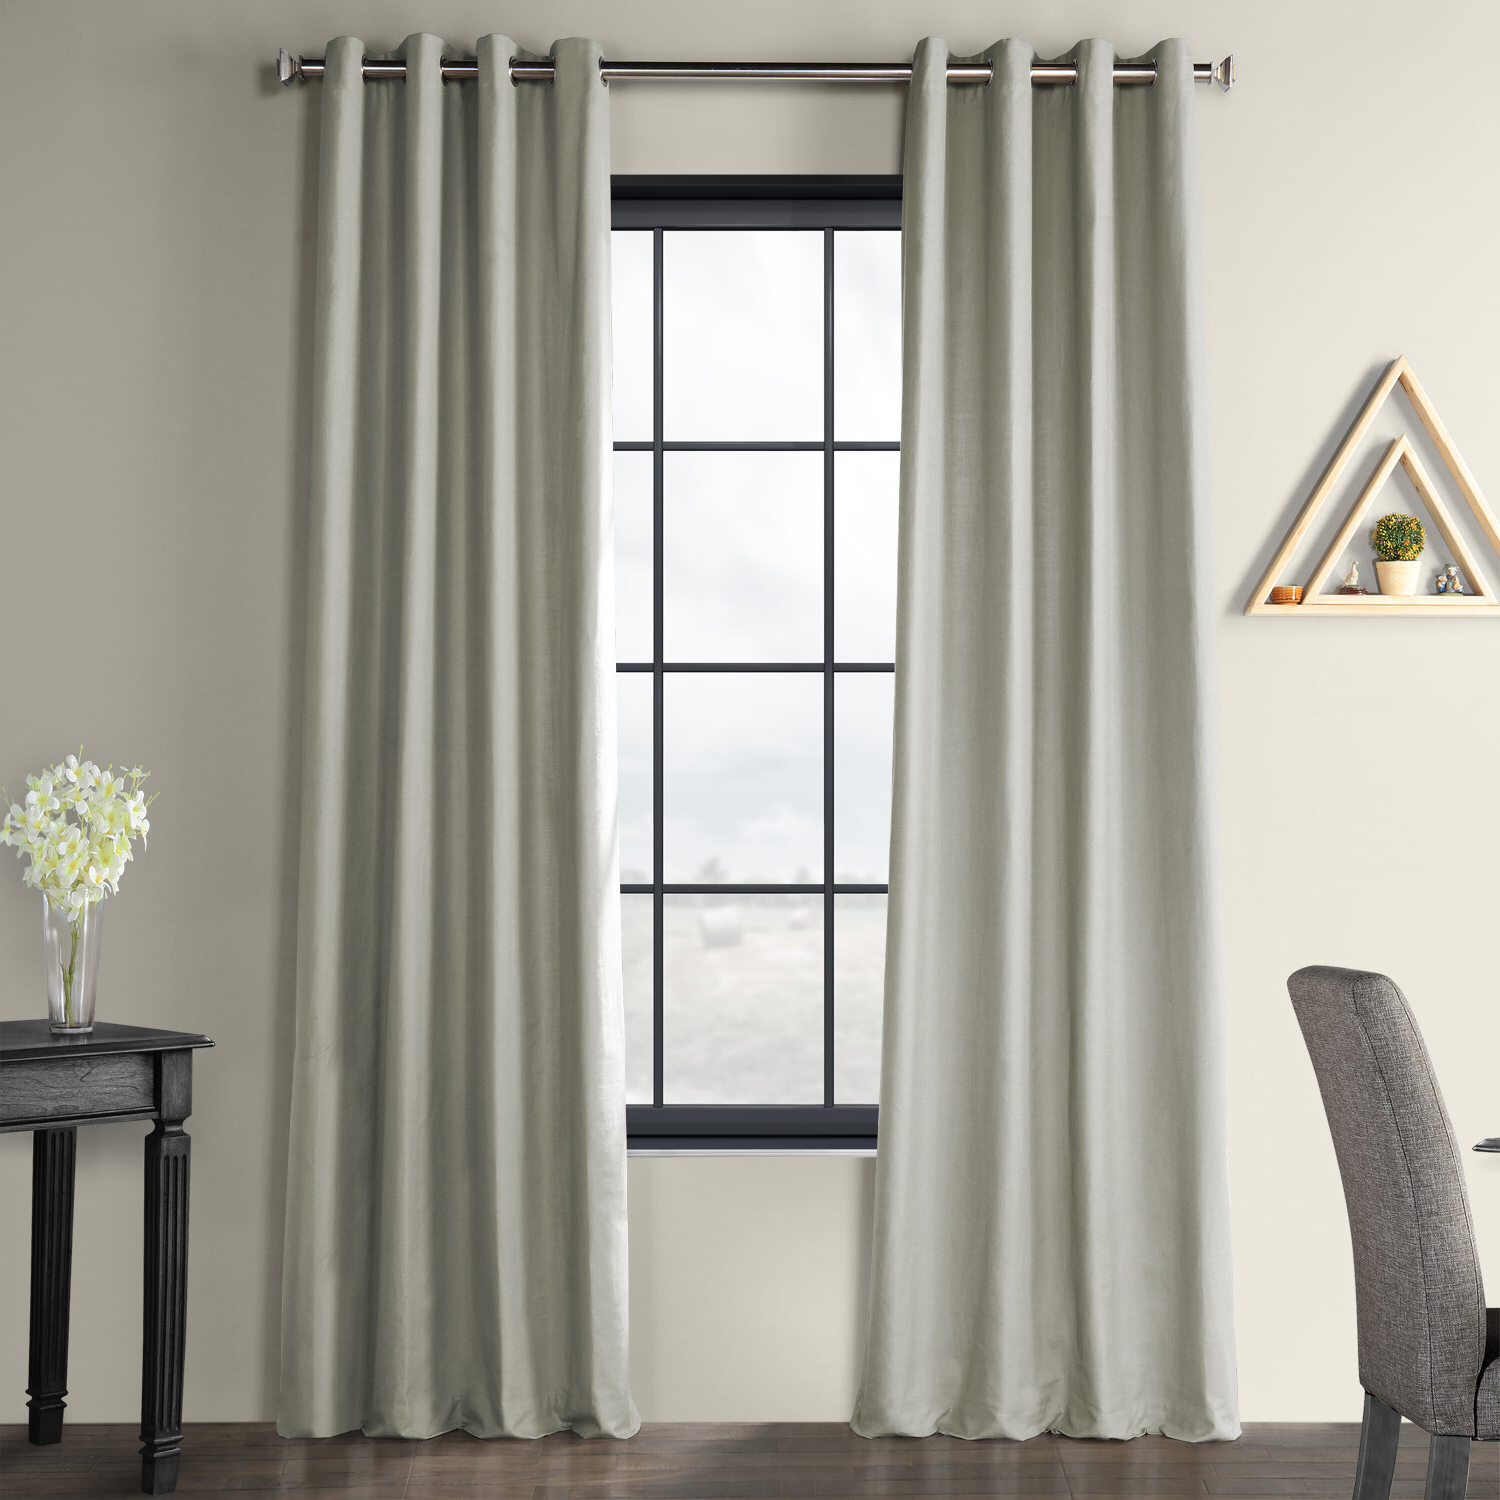 Bark Weave Solid Cotton Curtains In Favorite Solid Country Cotton Linen Weave Grommet Indoor Single Curtain Pane (View 18 of 20)